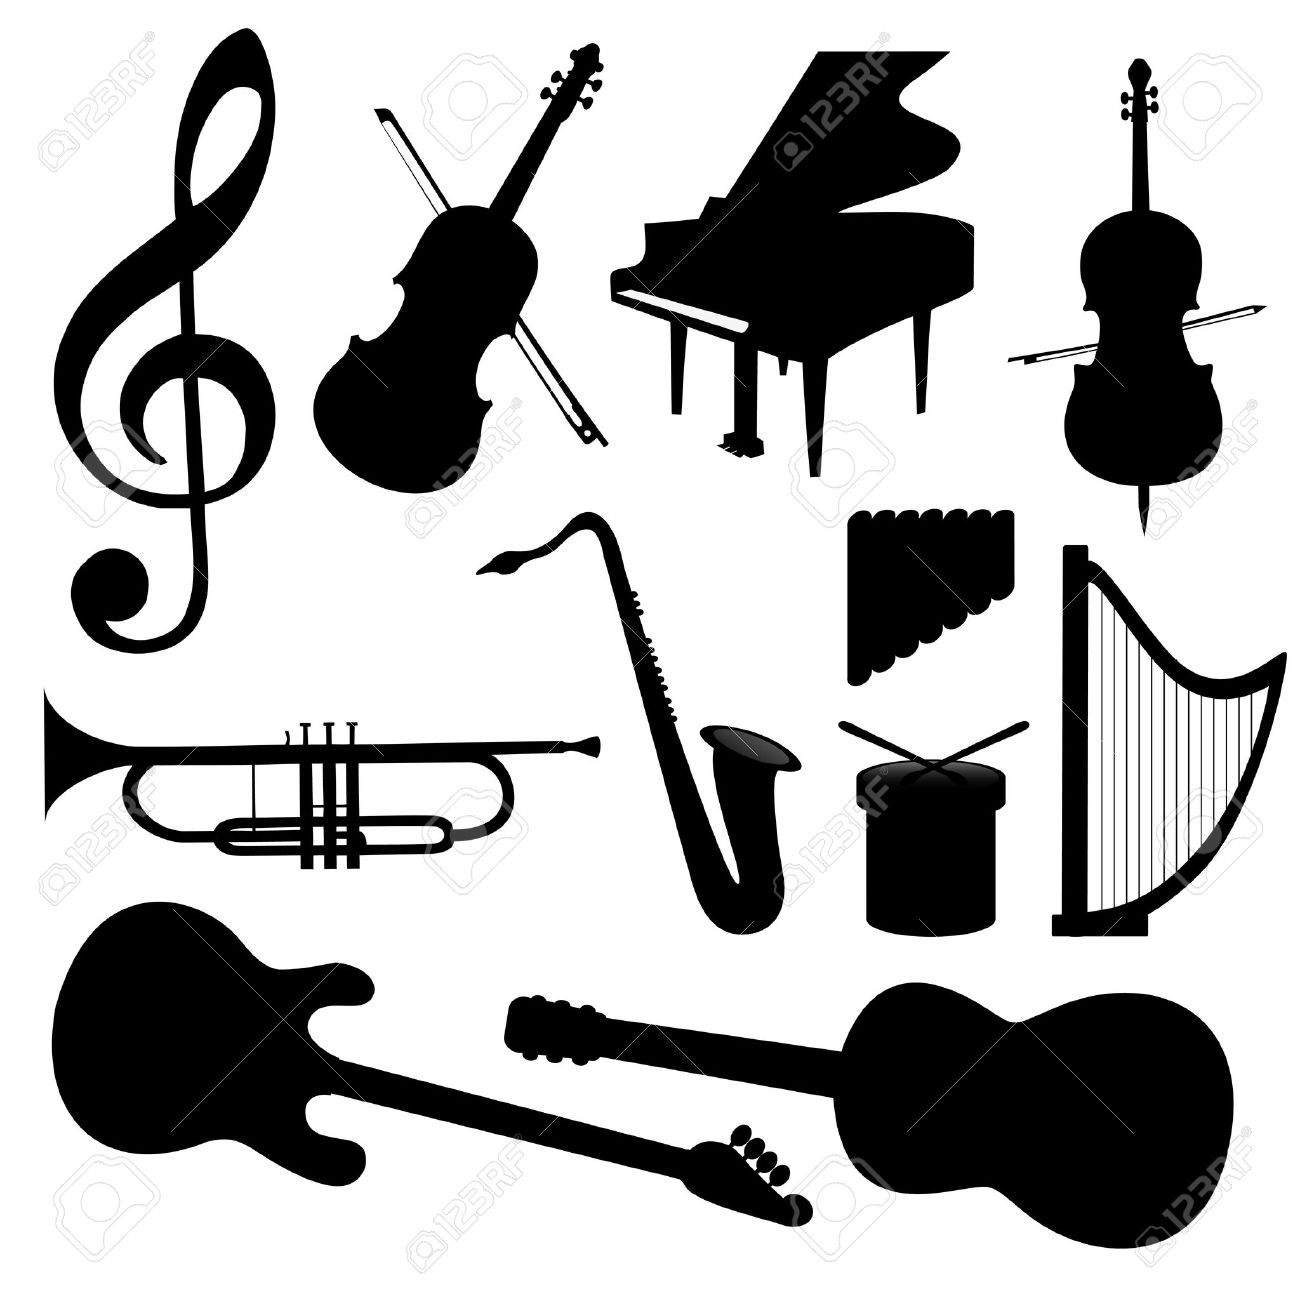 Music Instruments silhouette - Vector Stock Vector - 531567